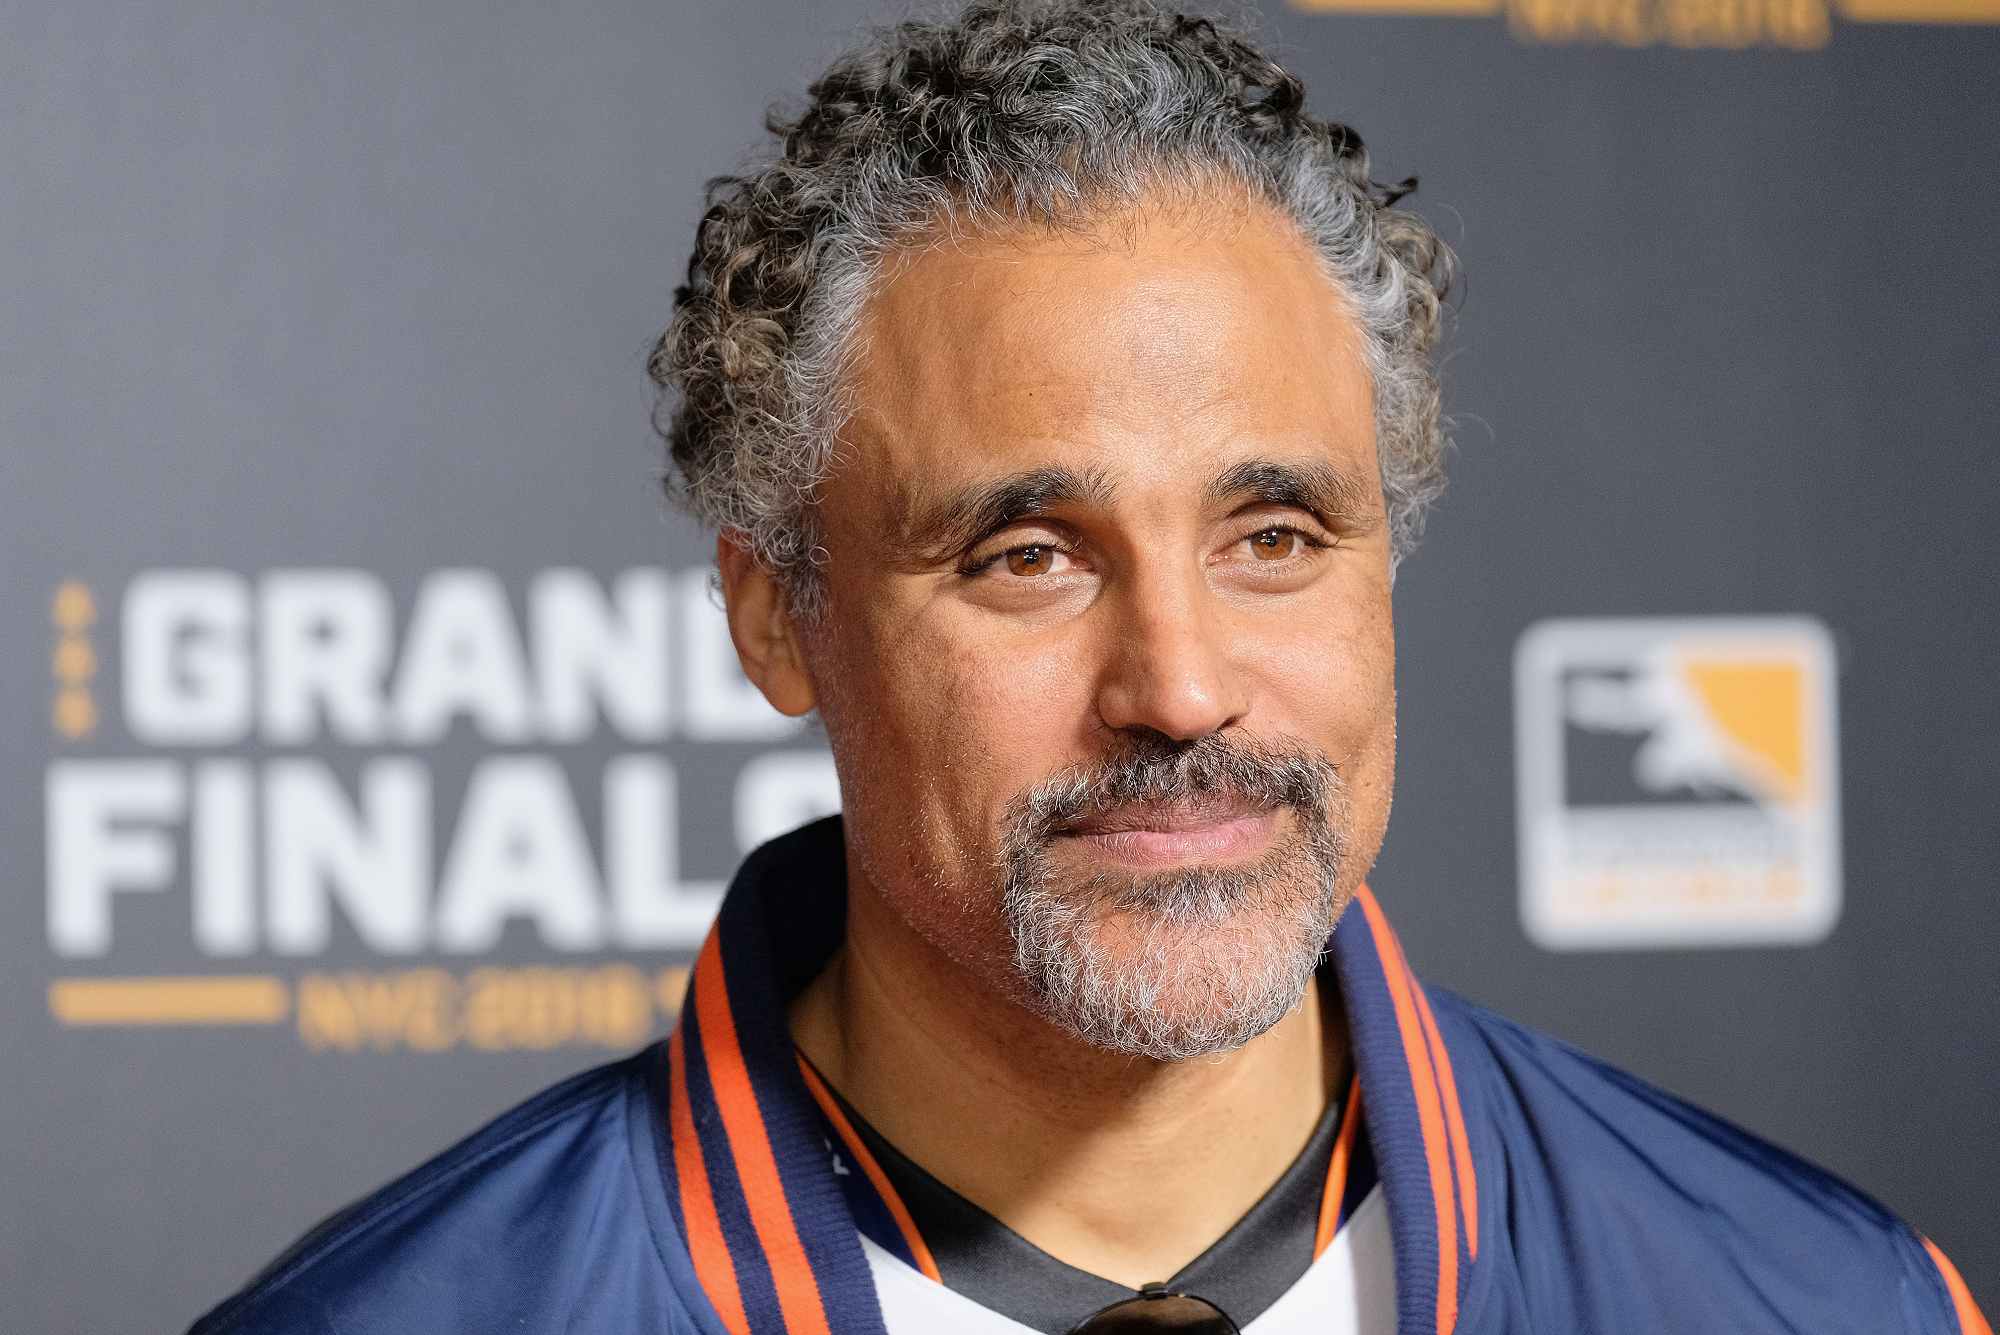 Report: Rick Fox Leaving Esports Organisation Because Of Racist Comments By Shareholder